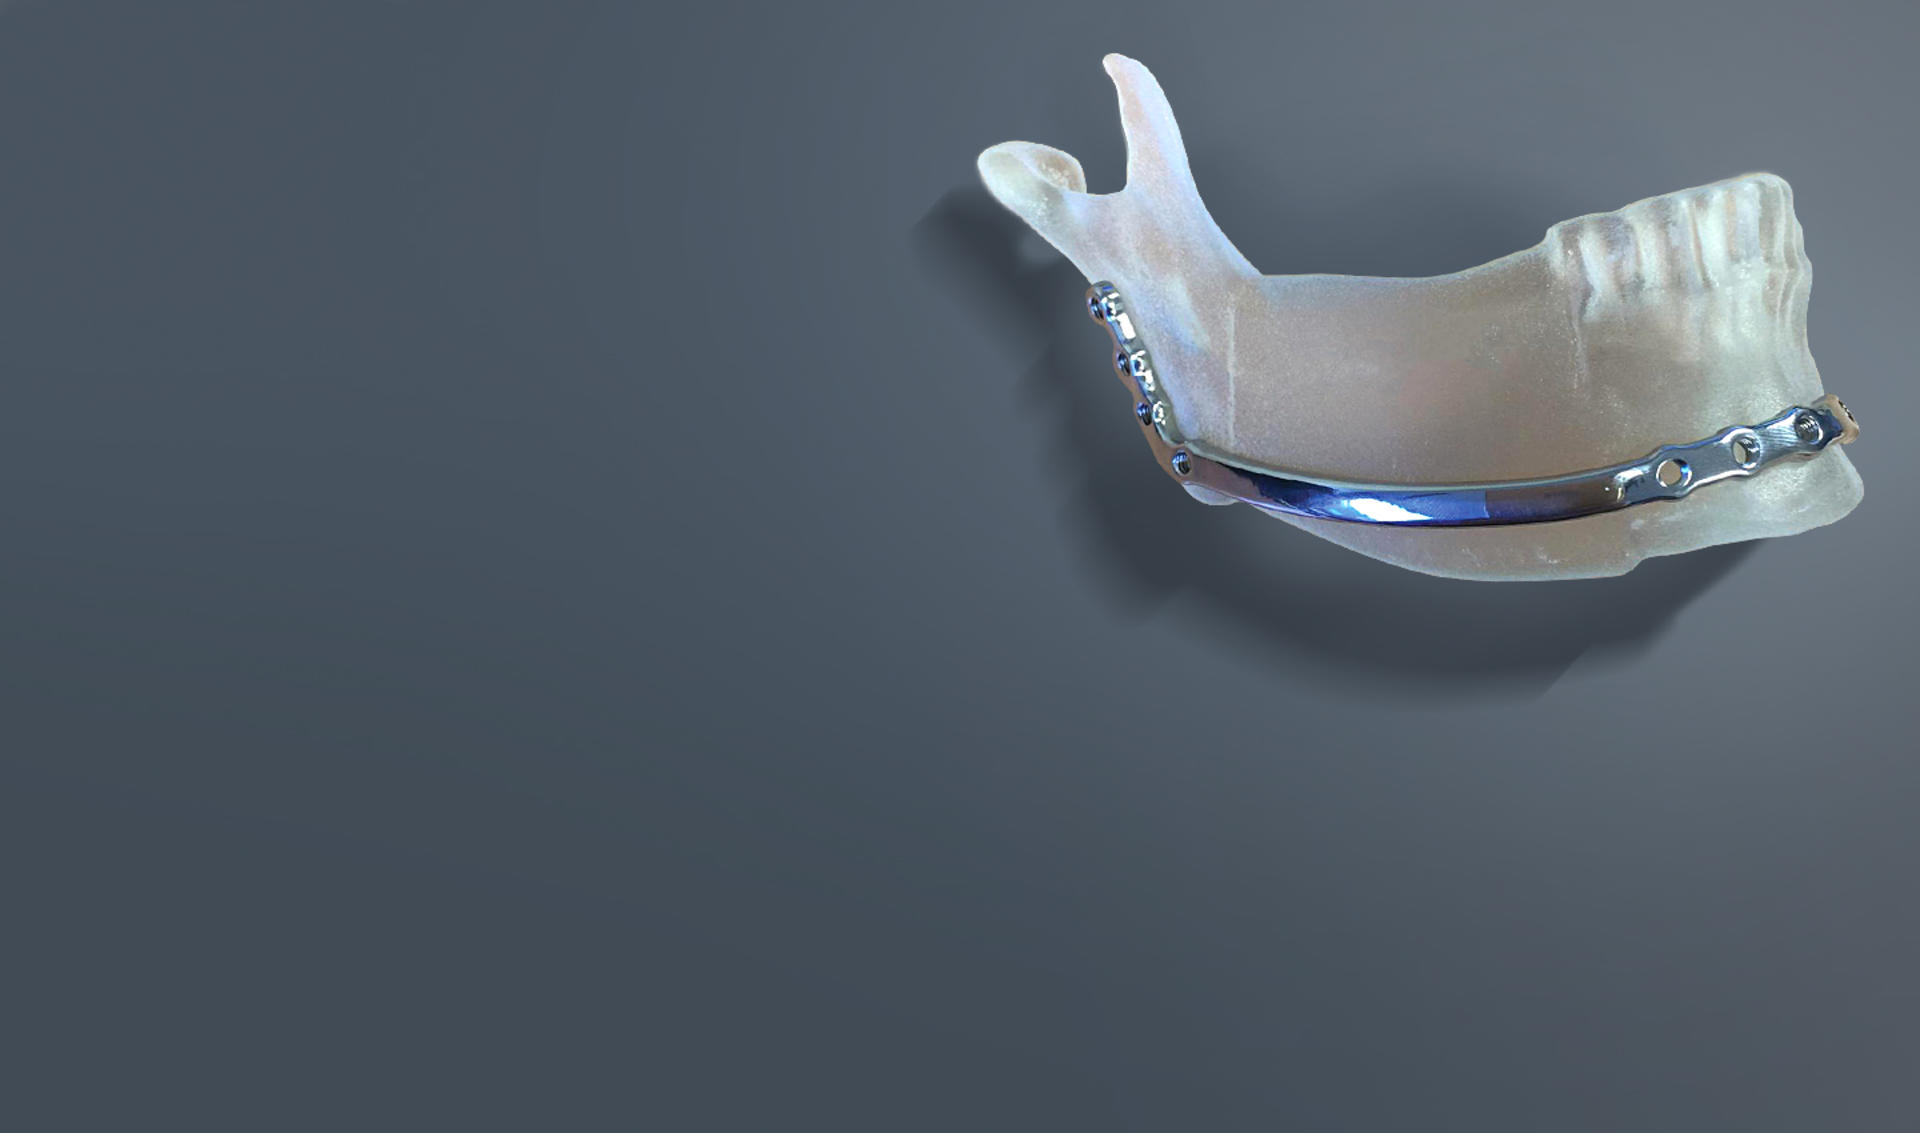 banner-3d-systems-uz-leuven-jaw-restoration-on-model